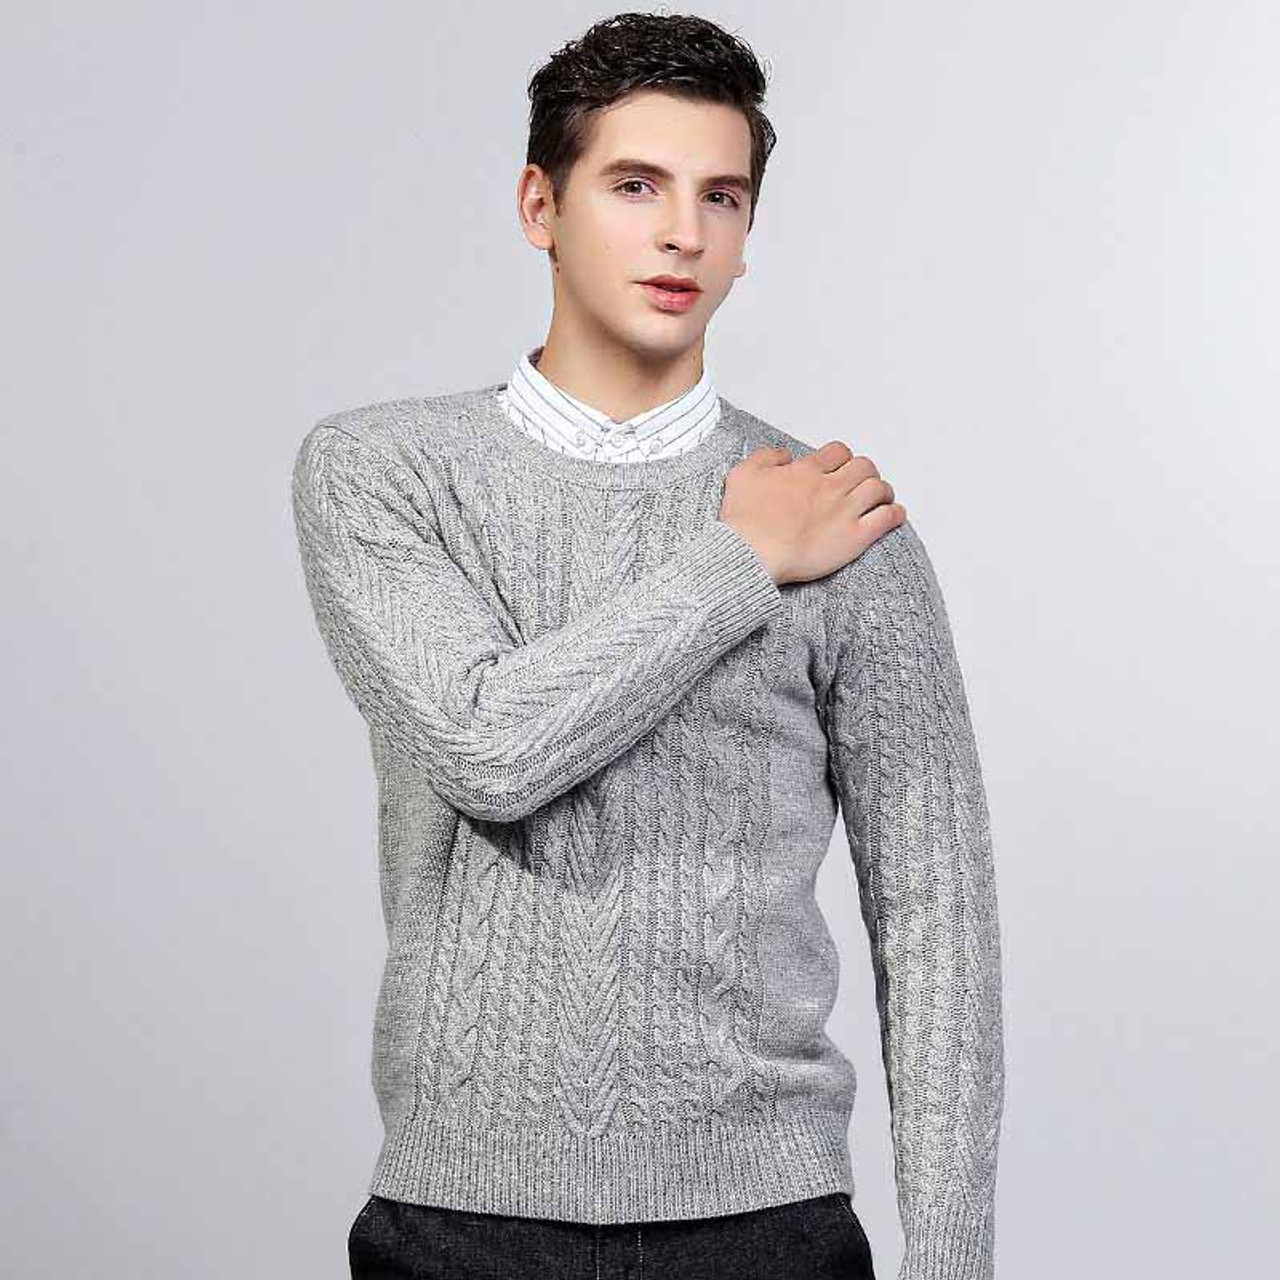 Grey knit pattern pull over long sleeve sweater